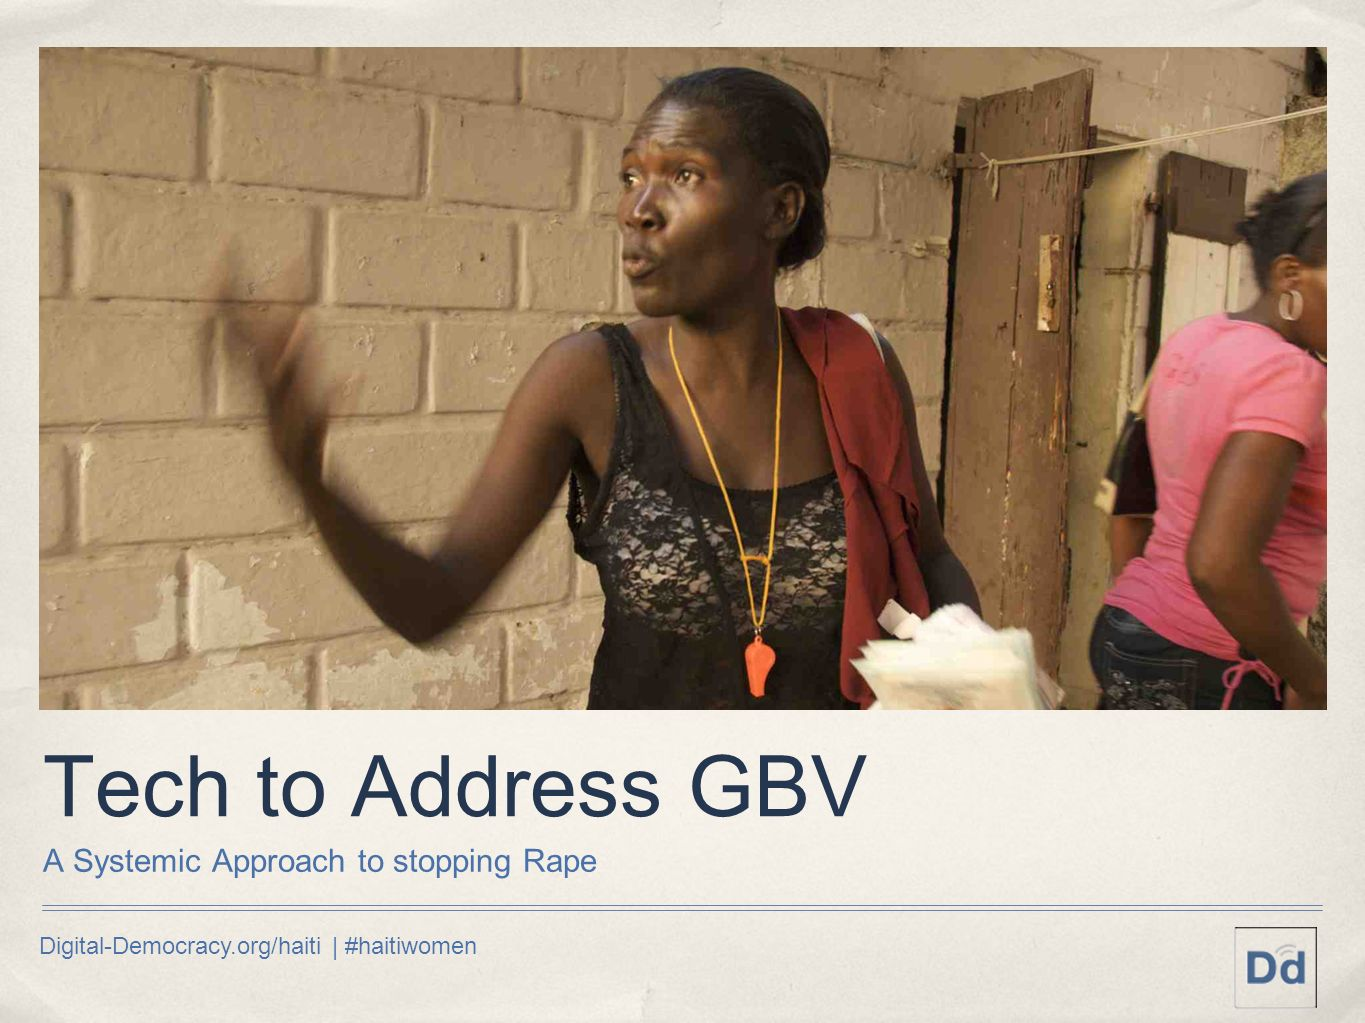 Digital-Democracy.org/haiti | #haitiwomen Tech to Address GBV A Systemic Approach to stopping Rape